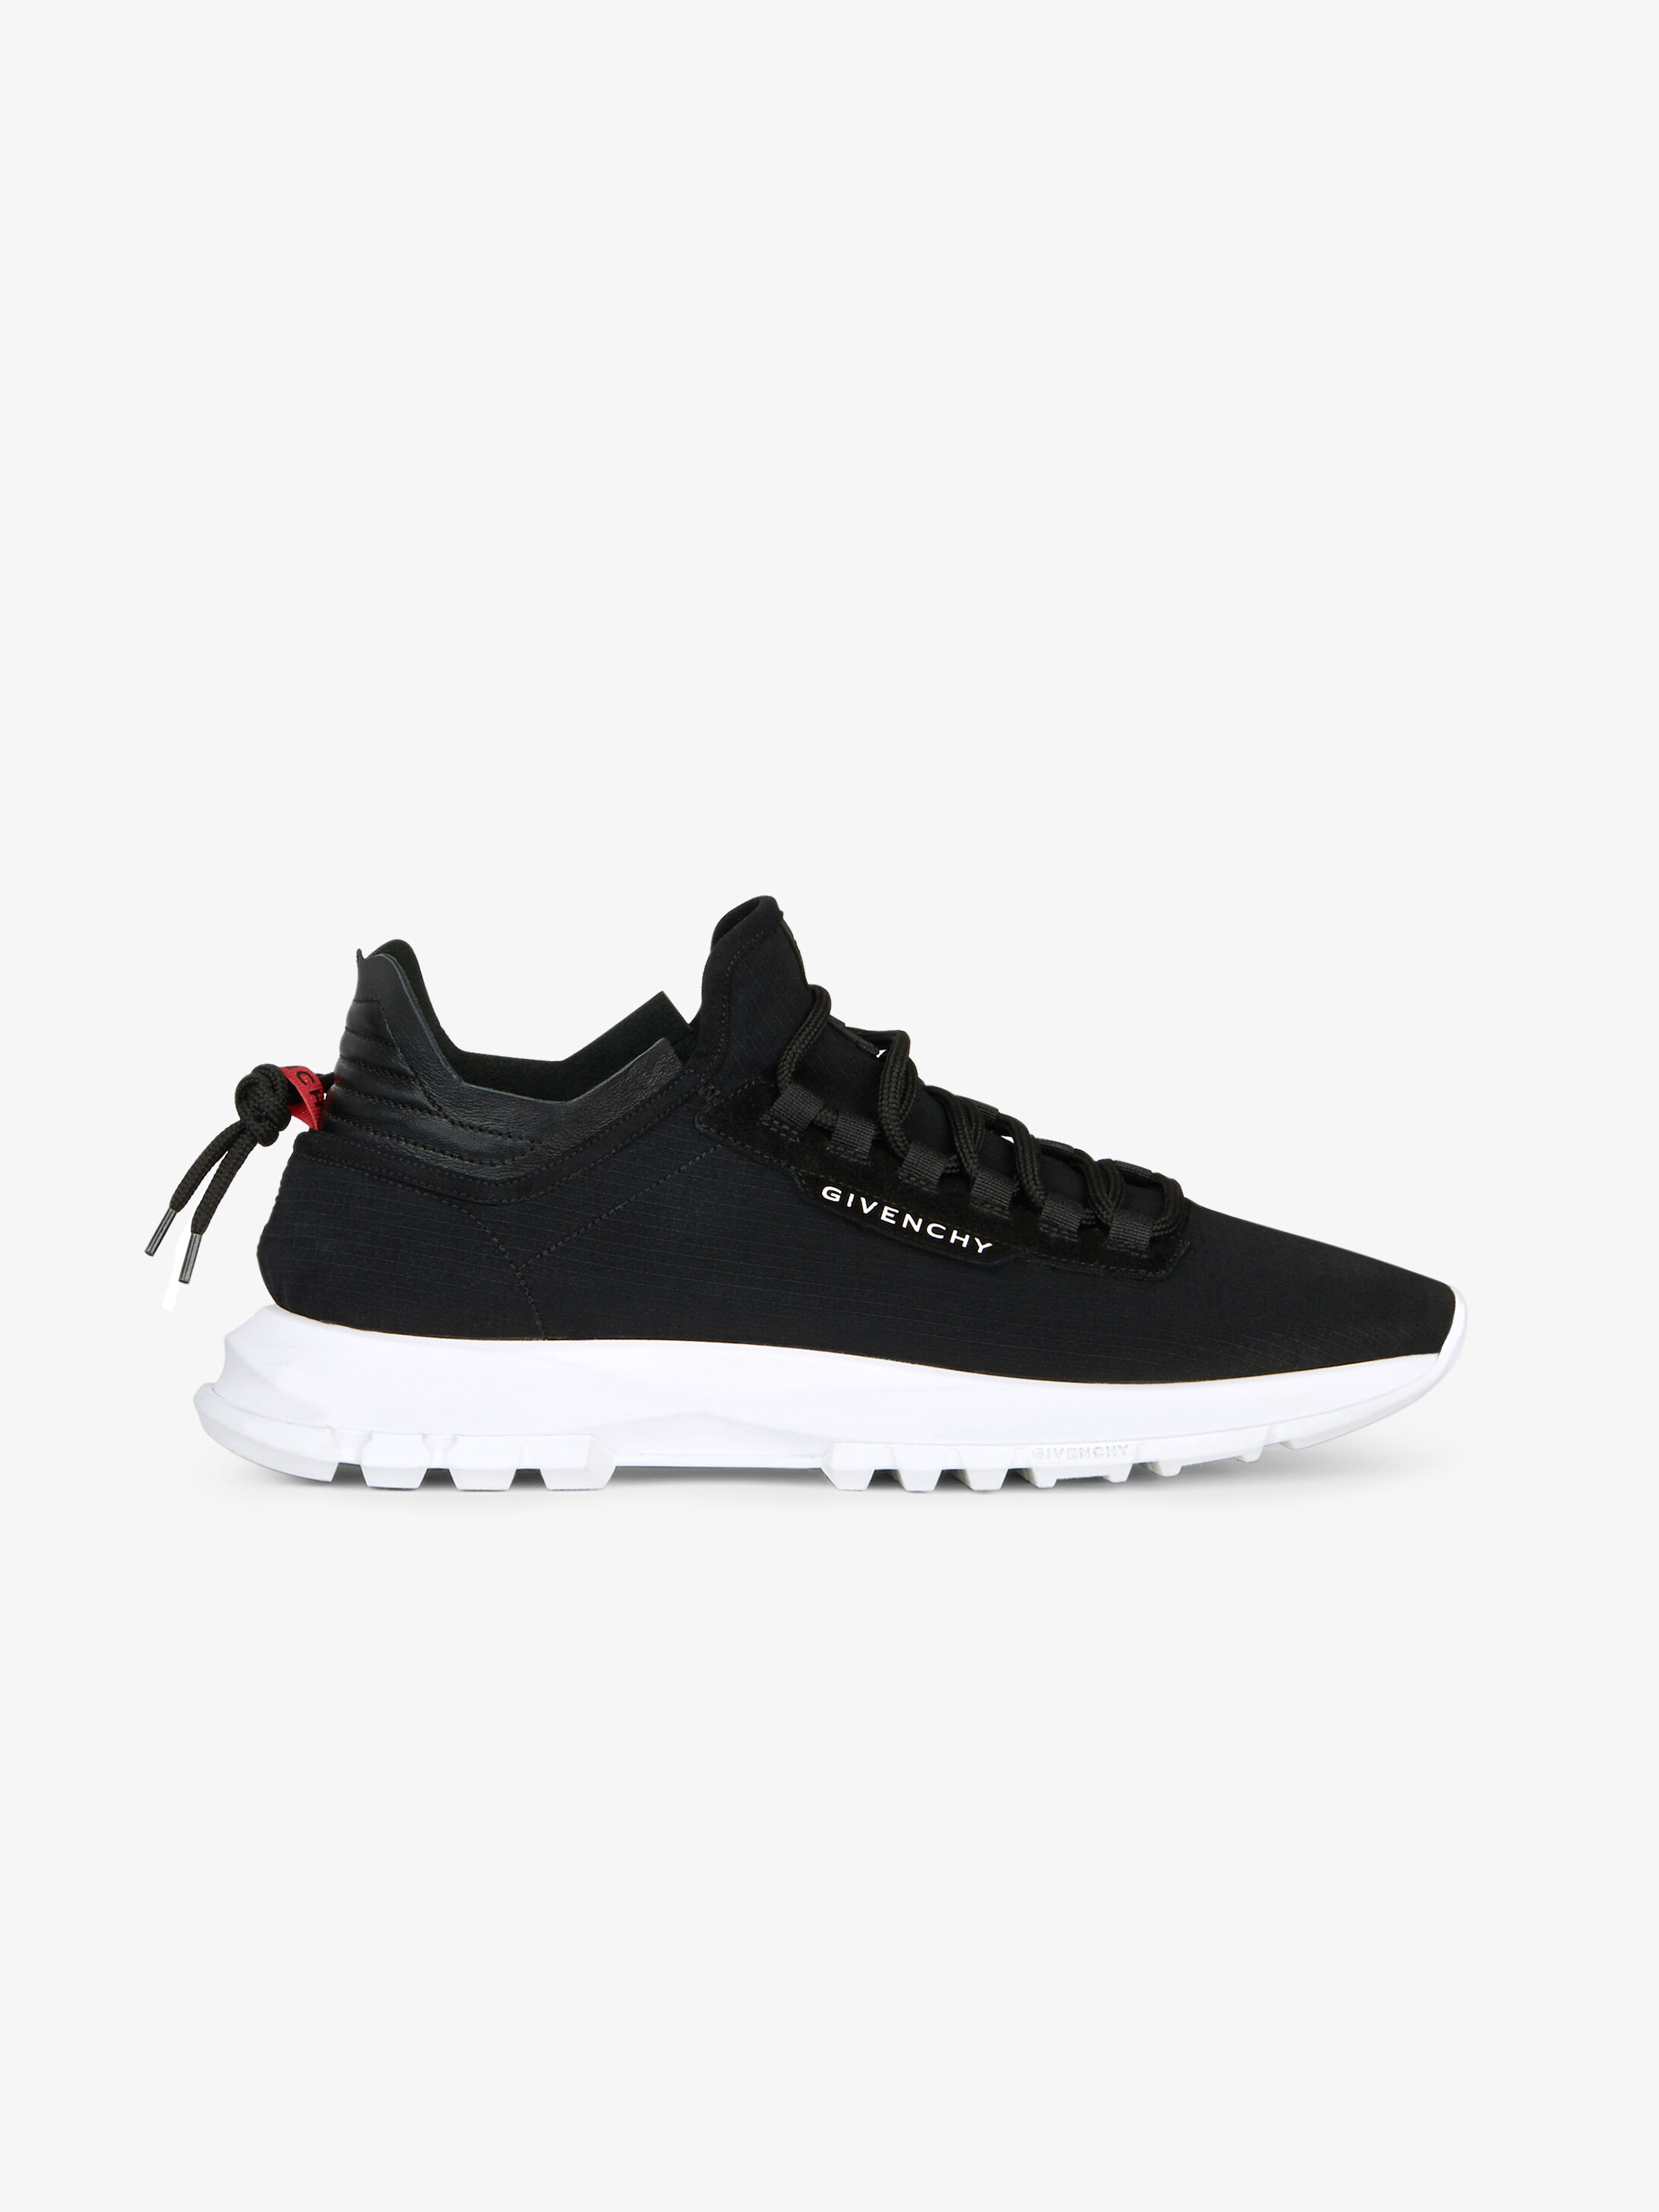 Men's Spectre Sneakers collection by